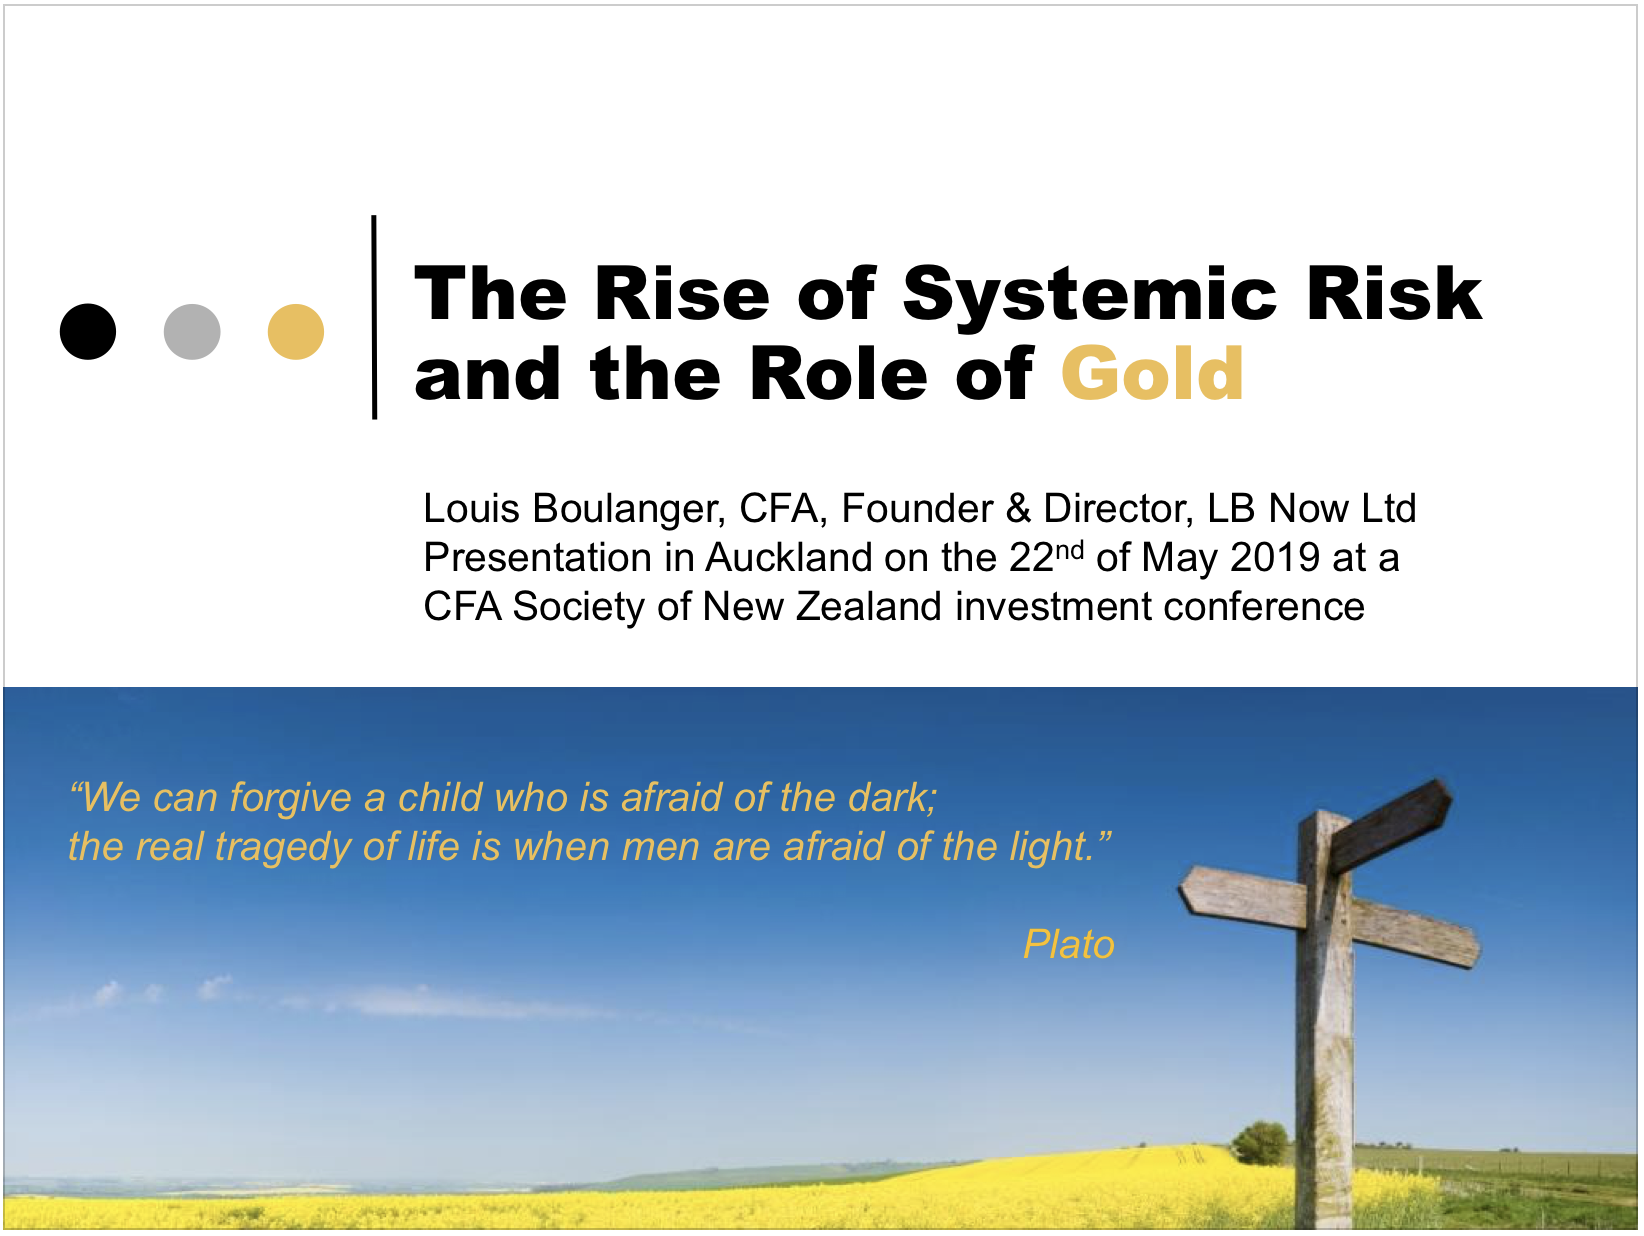 The Rise of Systemic Risk and the Role of Gold